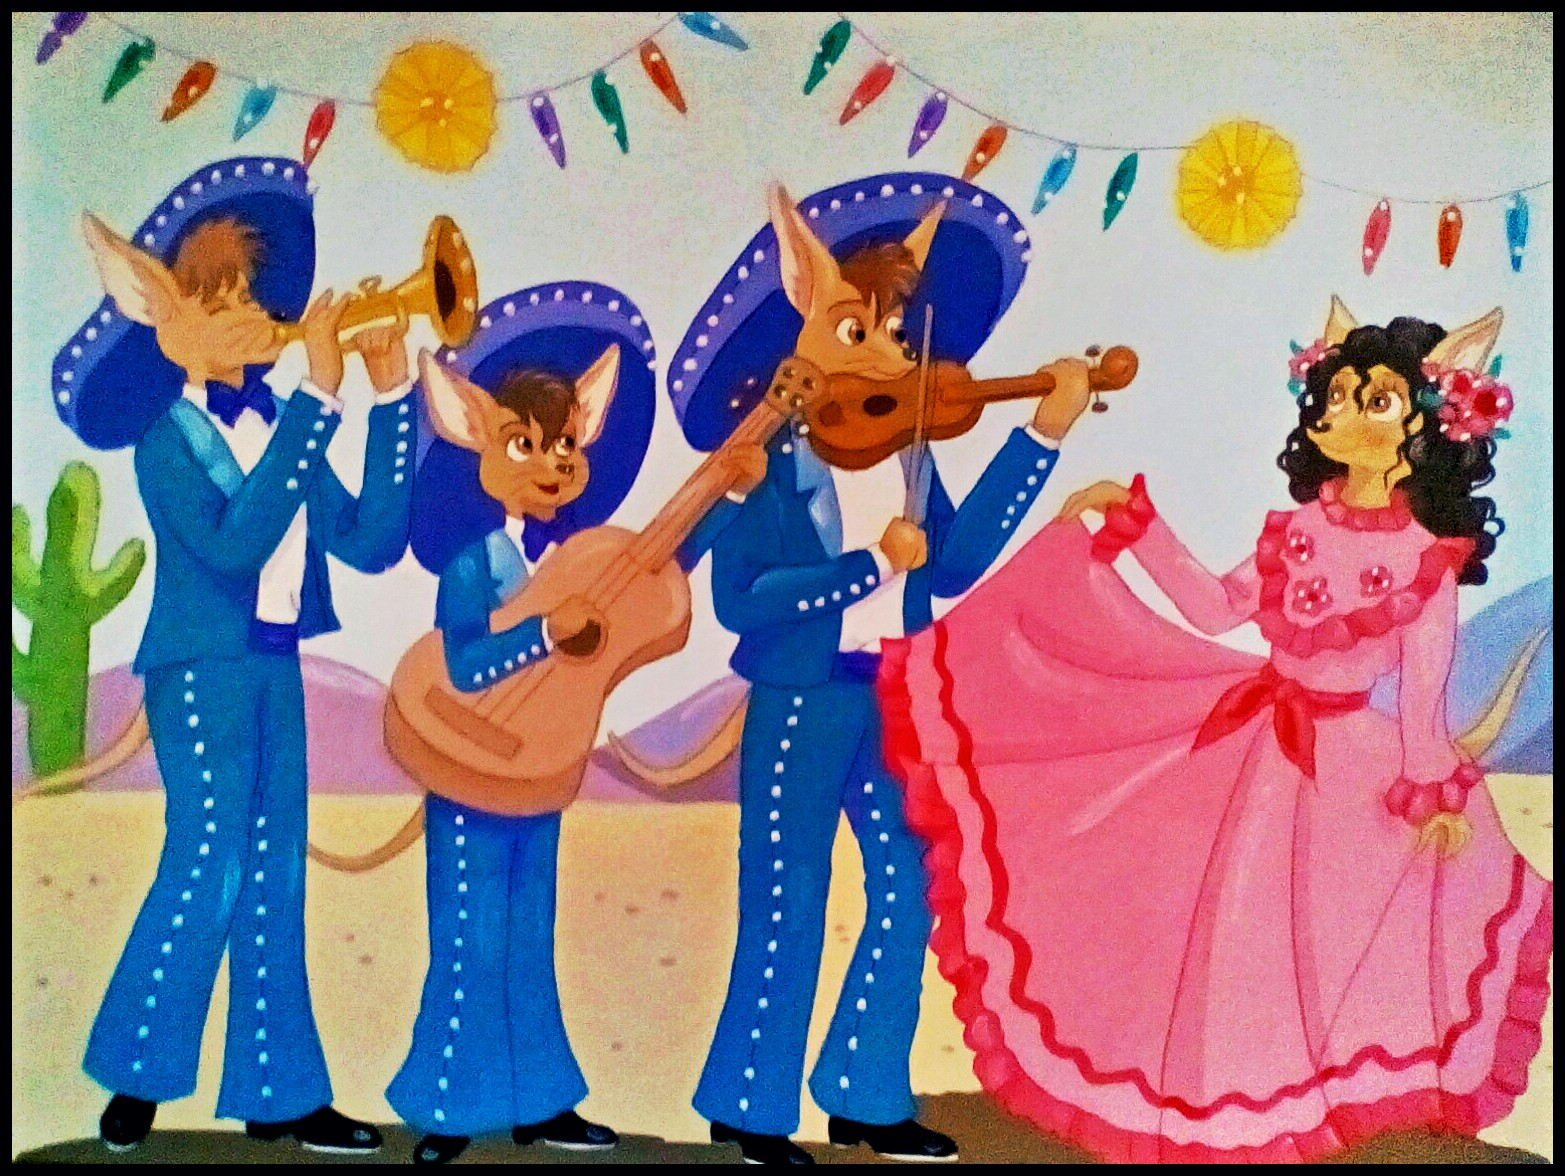 Marvelous Mariachis by FoxyFlapper